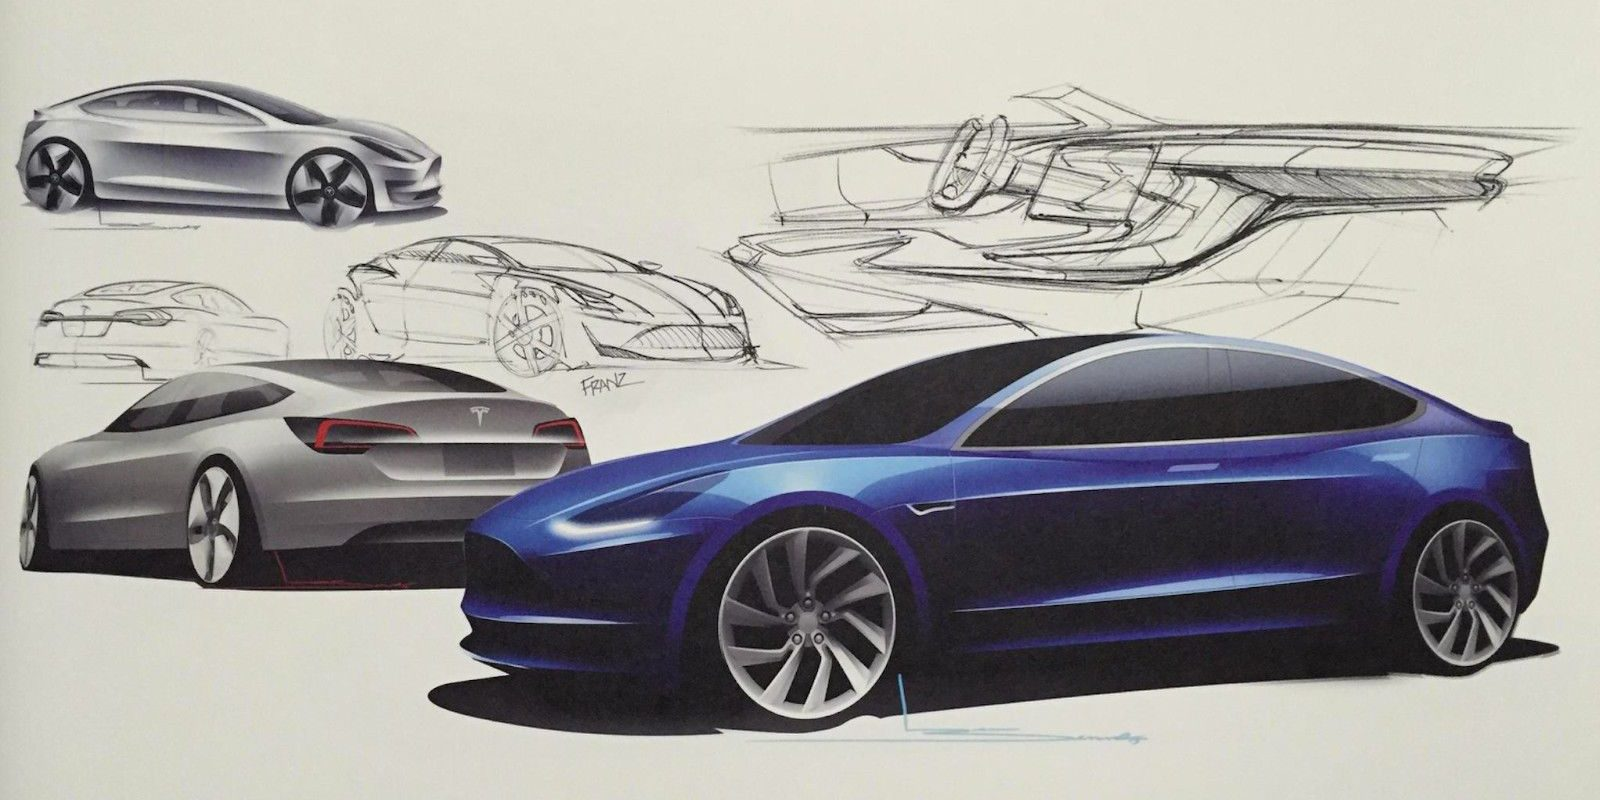 Tesla will open a European design center in Germany, in addition to US & China